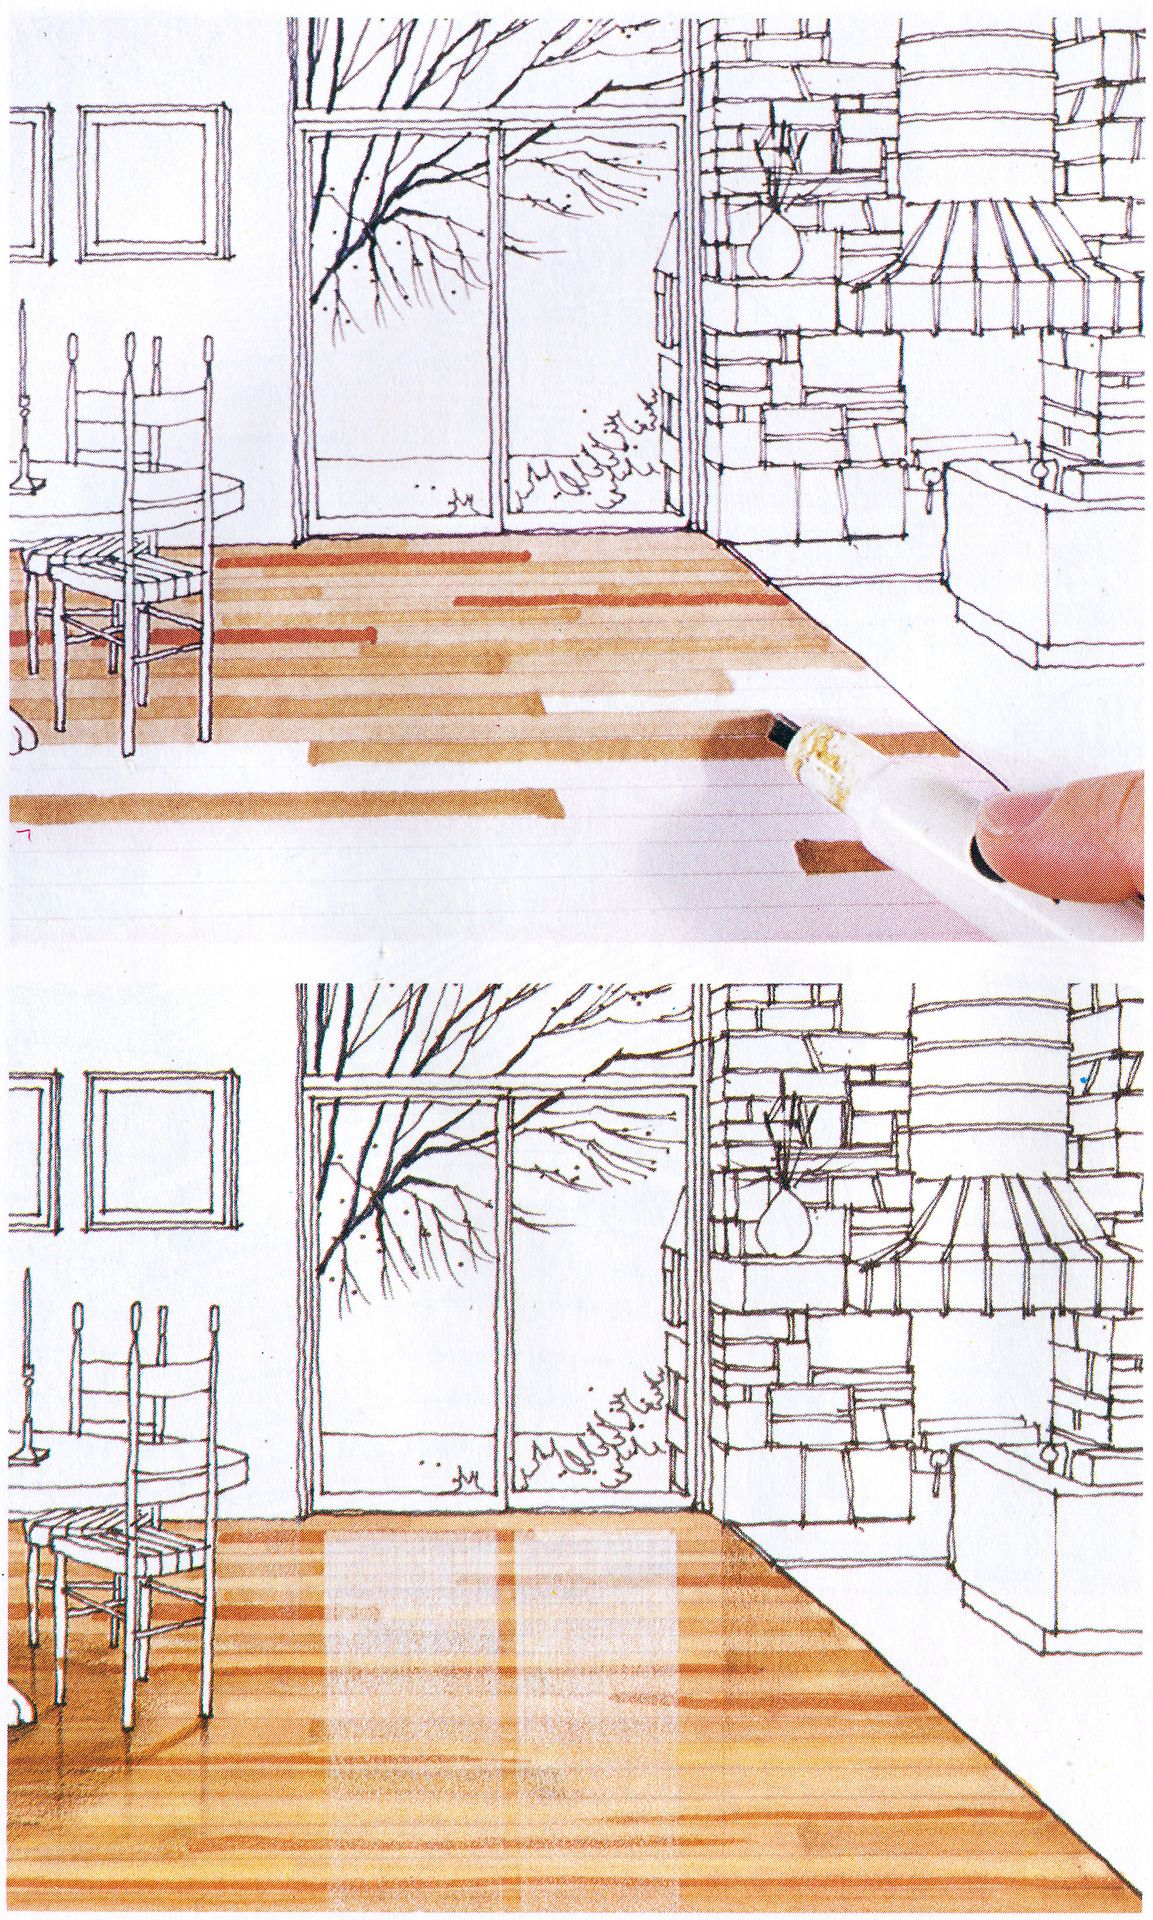 Interior Design Color Sketches drawing with markers is cool old school. from michael doyle's